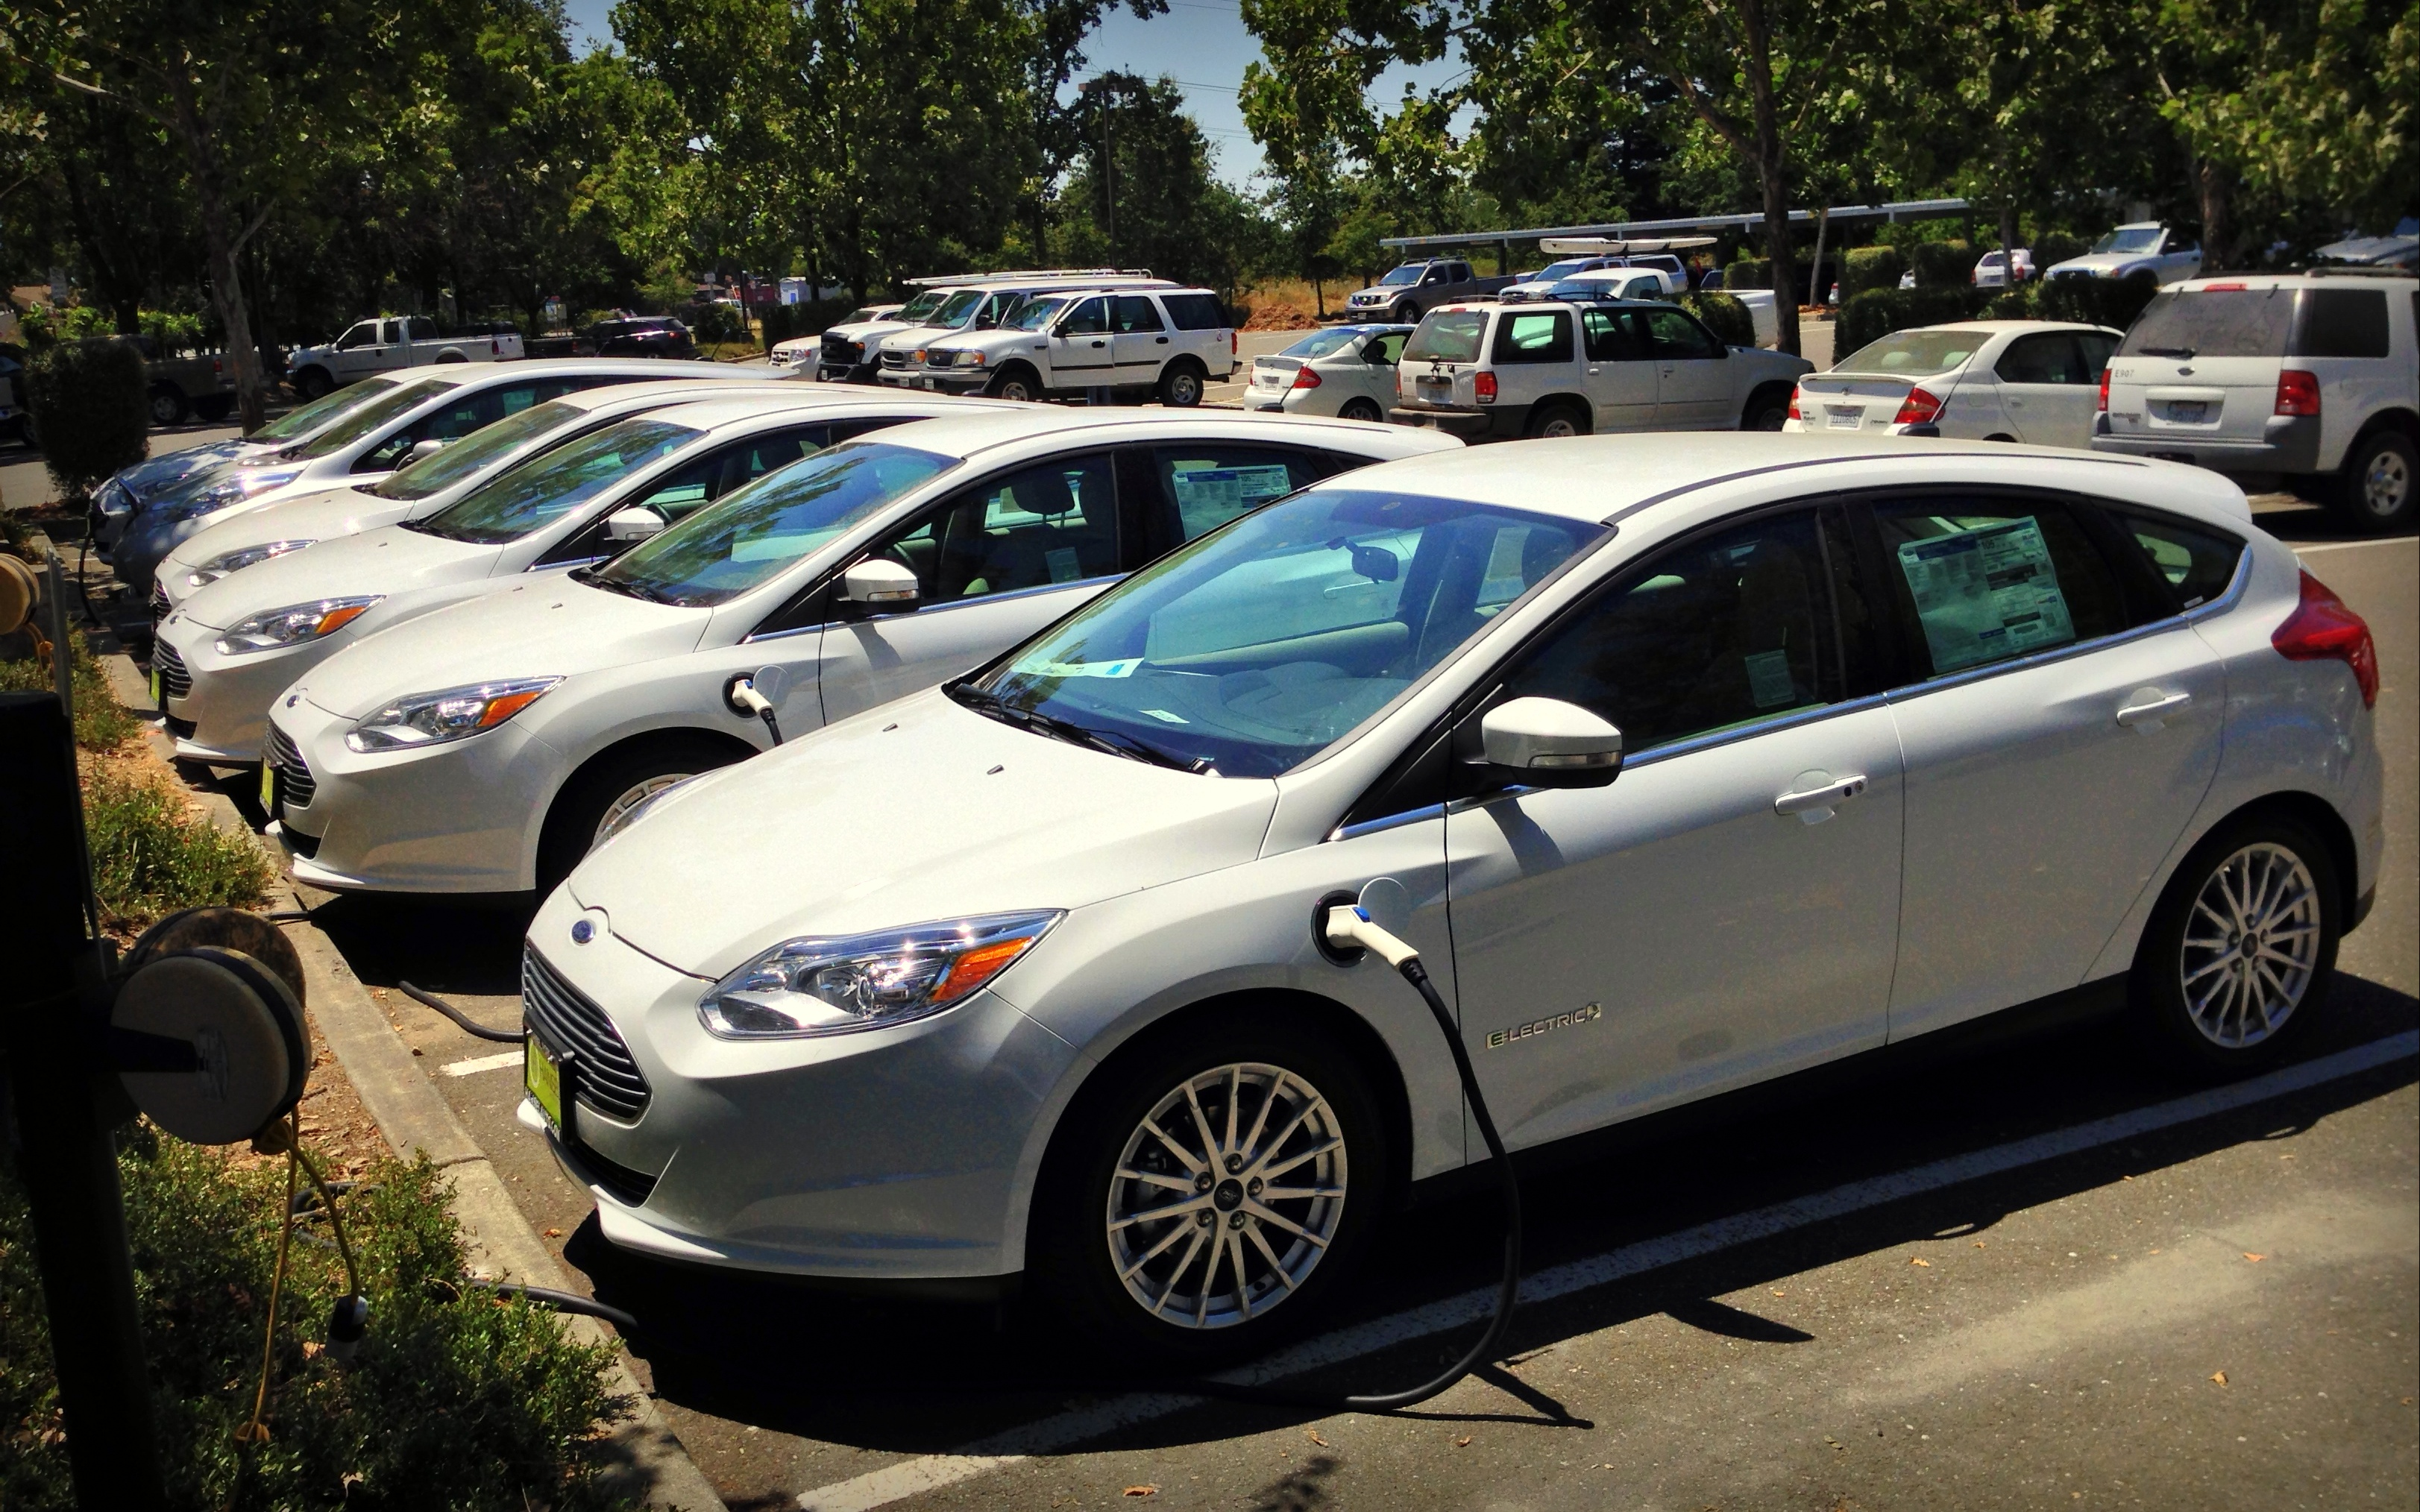 Low energy cars at the Sonoma County Water Agency.